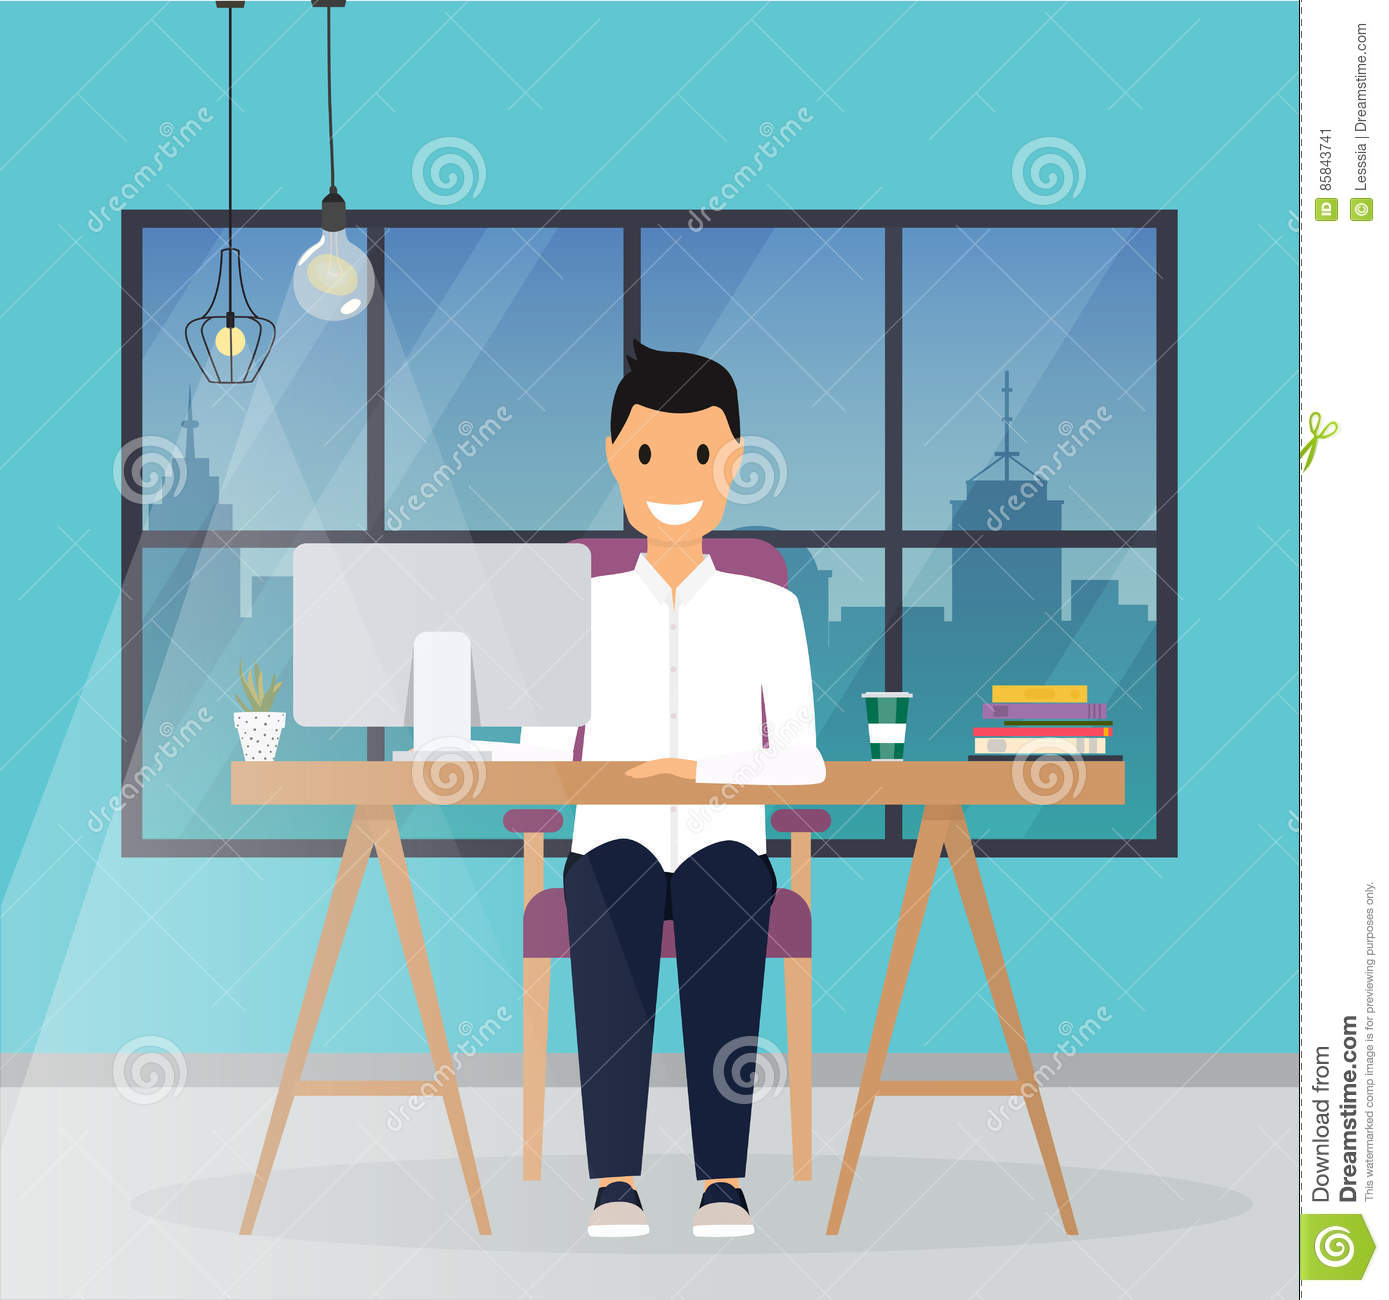 Business Man Working At His Office Desk Flat Design Modern Vector Business Concept Stock Vector Illustration Of Person Desk 85843741